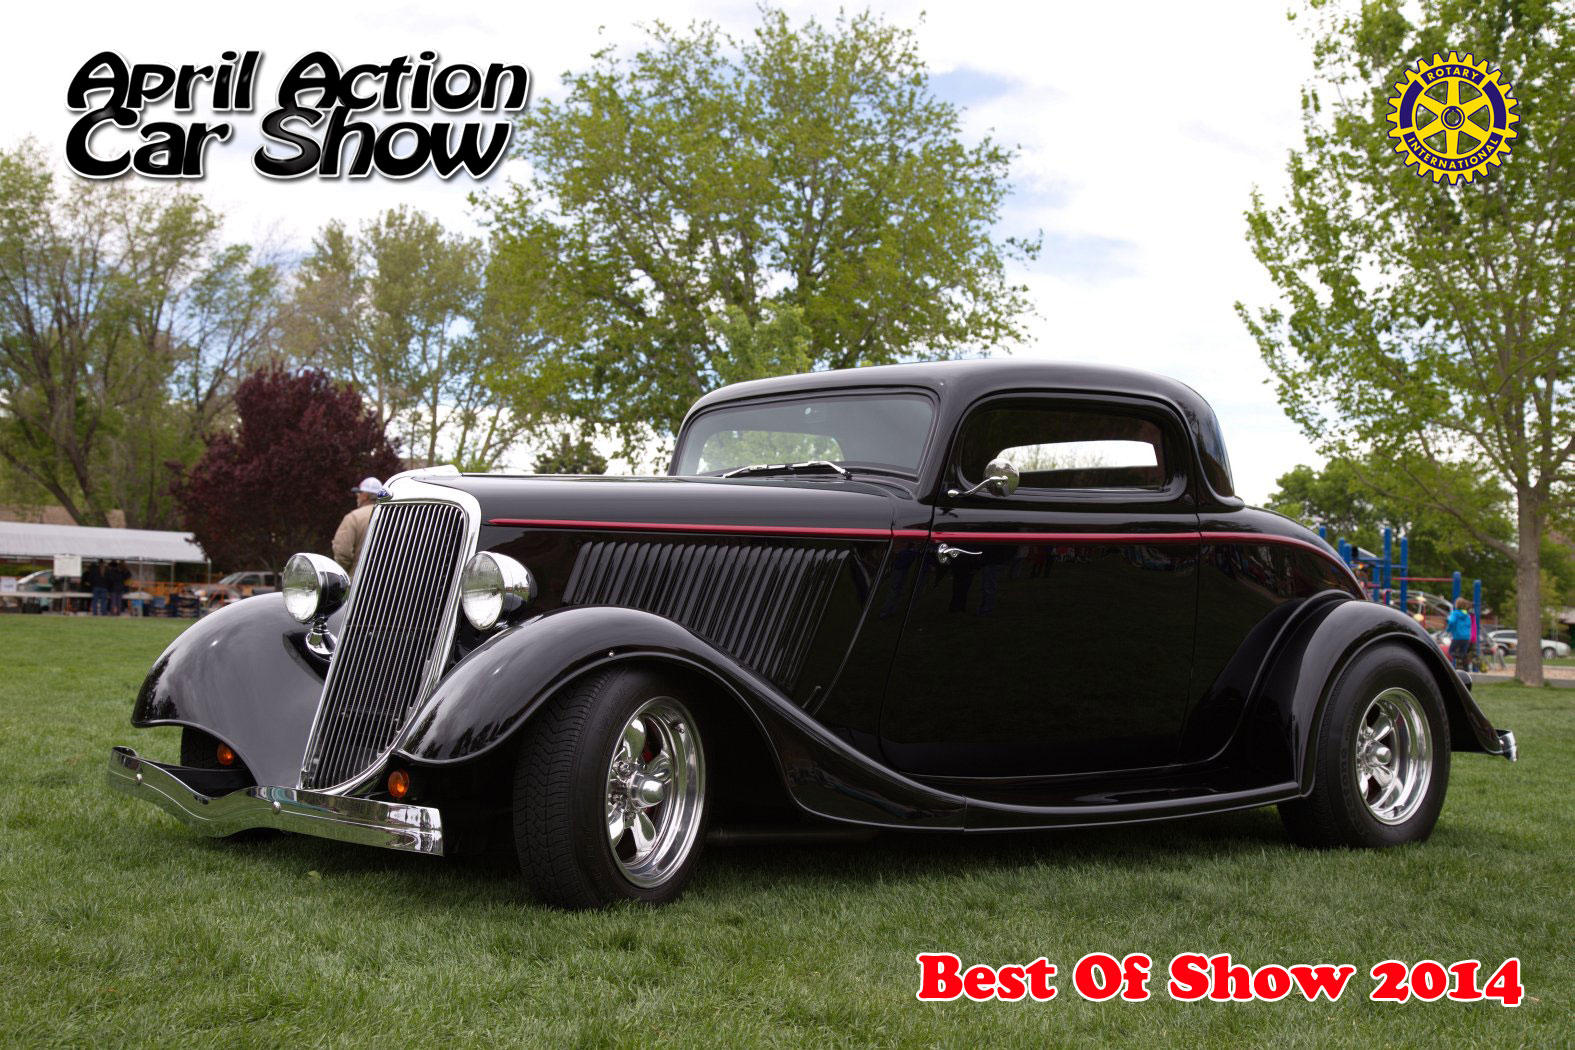 Moab Rotary Club Has Car Show To Fund Scholarships UPR Utah Public - Moab utah car show